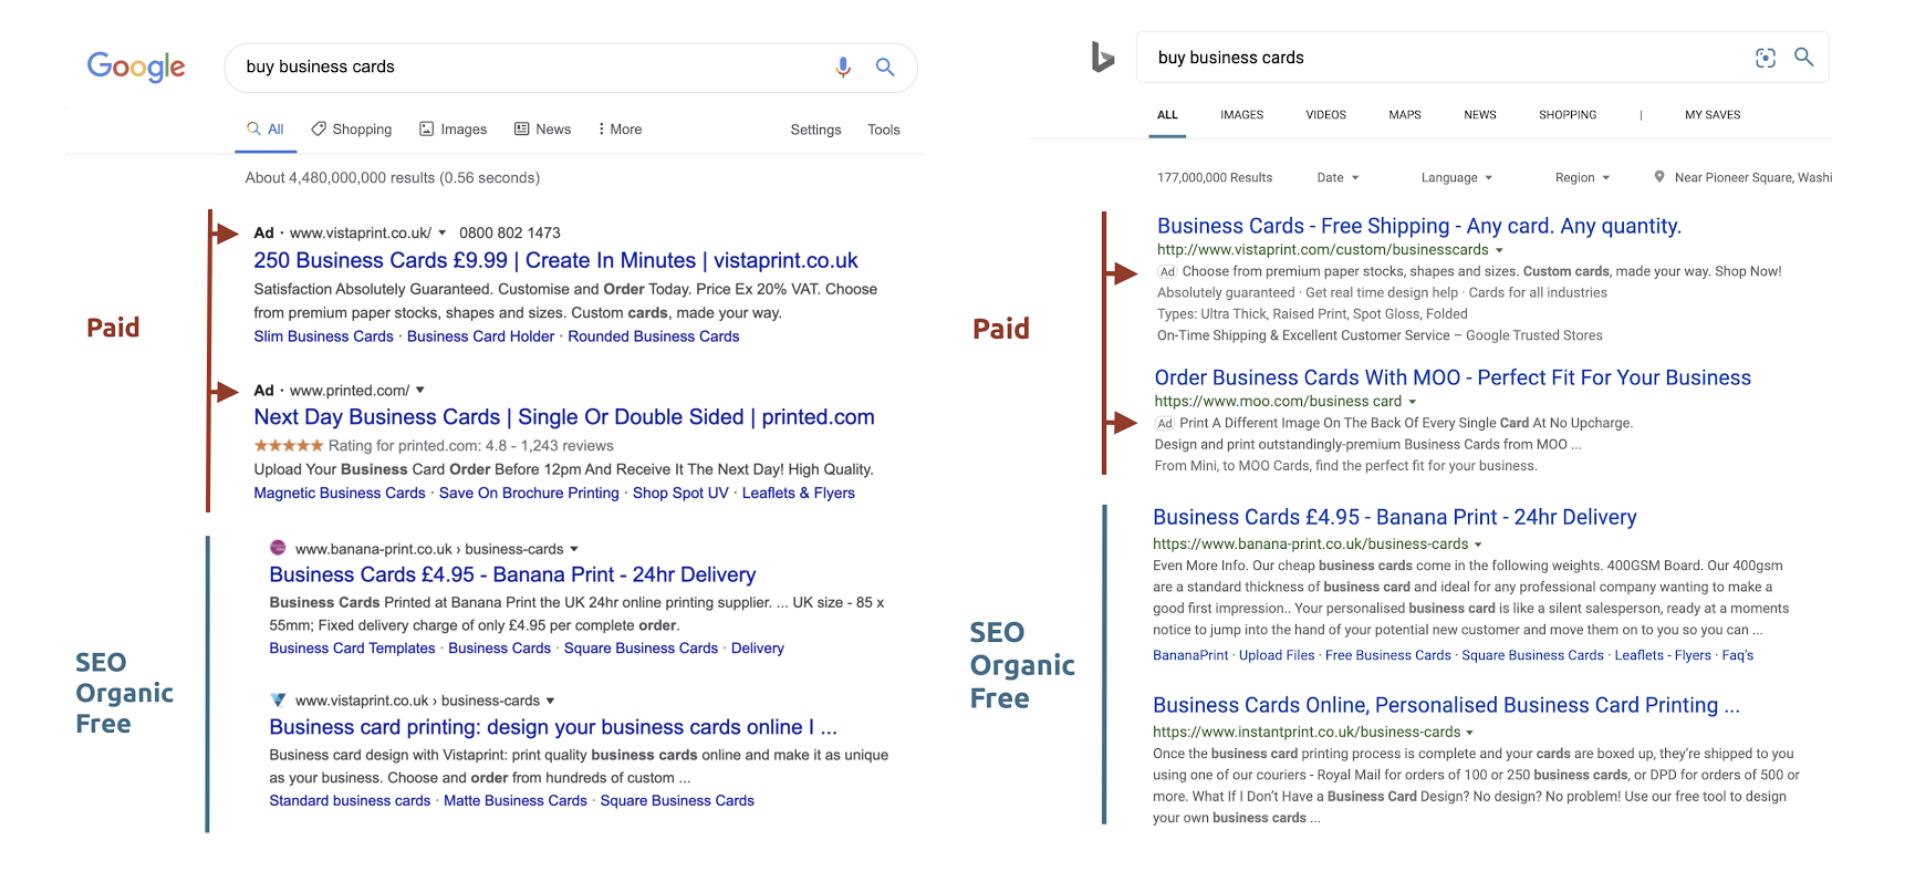 Organic vs Paid Ad Listing on SERPs